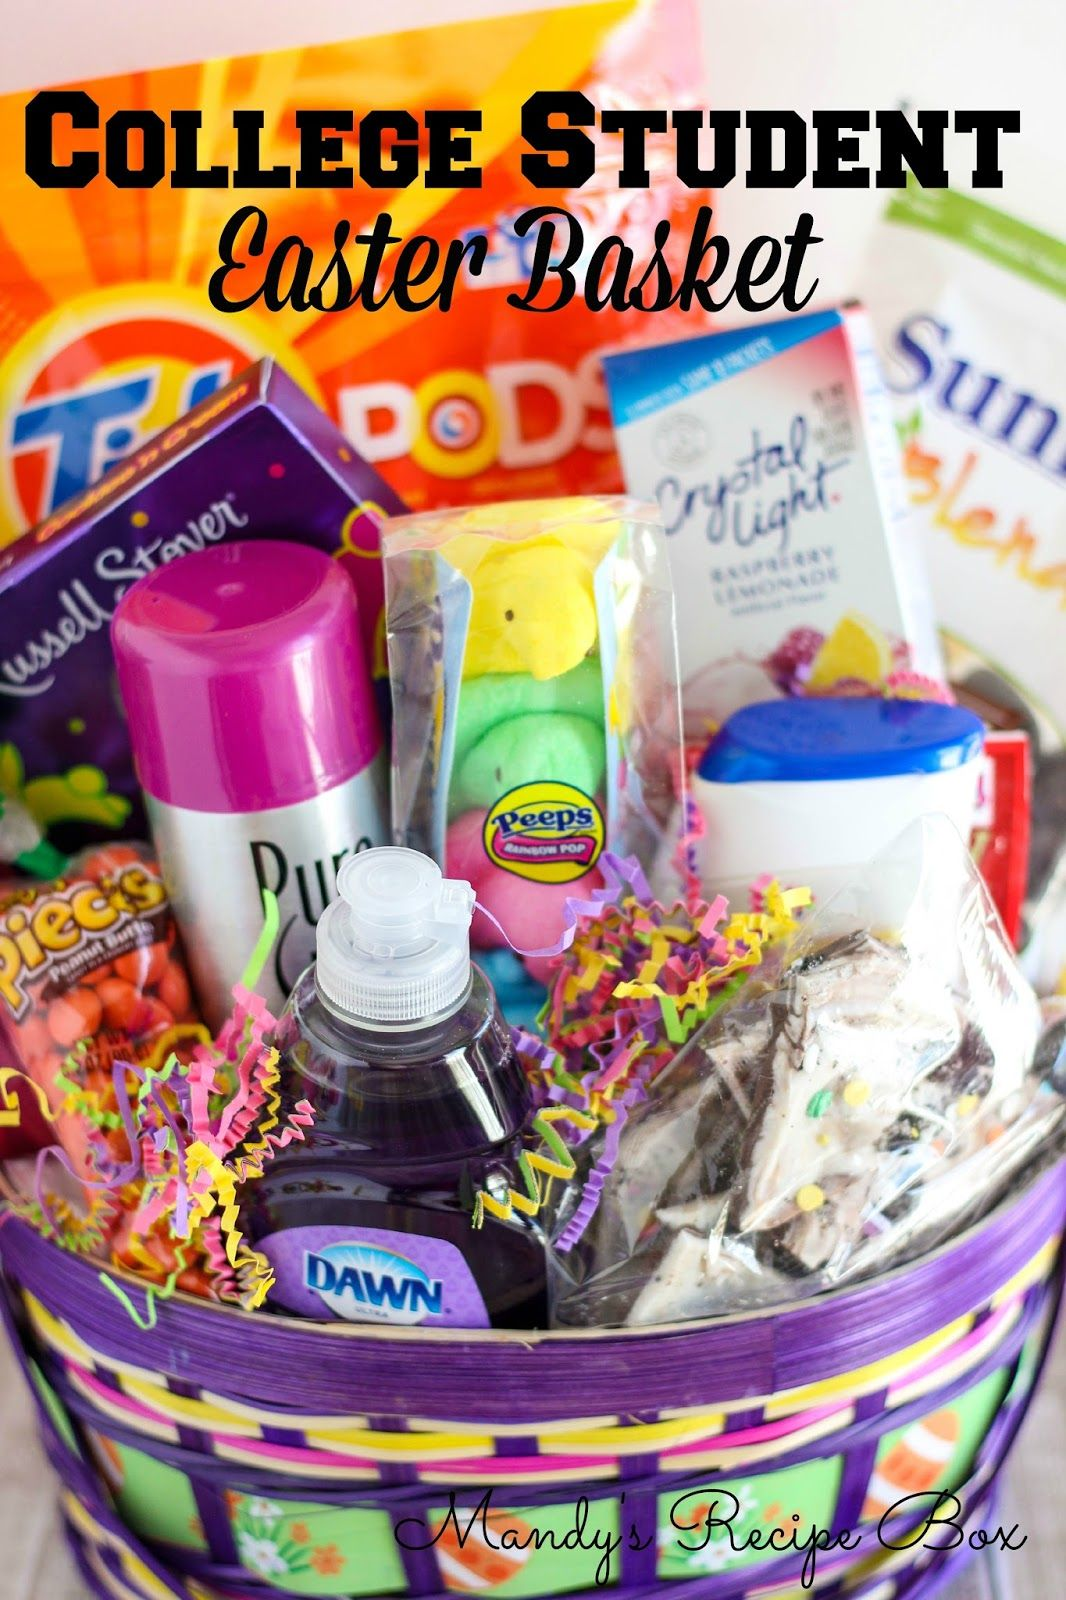 College Student Easter Basket Mandy S Recipe Box Kids Easter Basket Easter Baskets Easter Gift Baskets